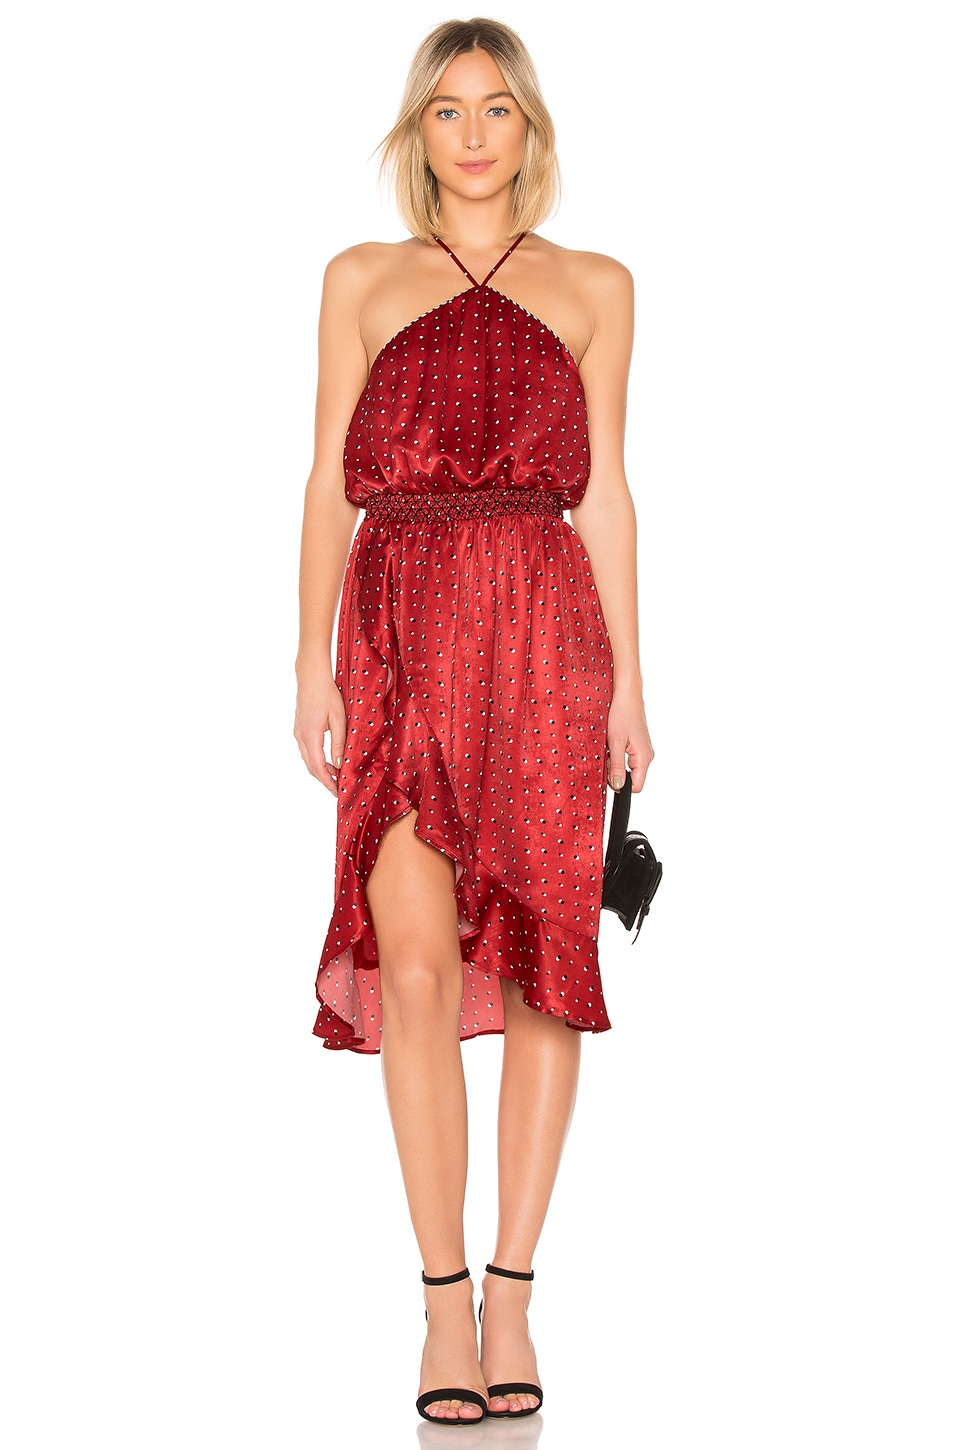 House of Harlow 1960 x REVOLVE Baye Midi in Red Dot